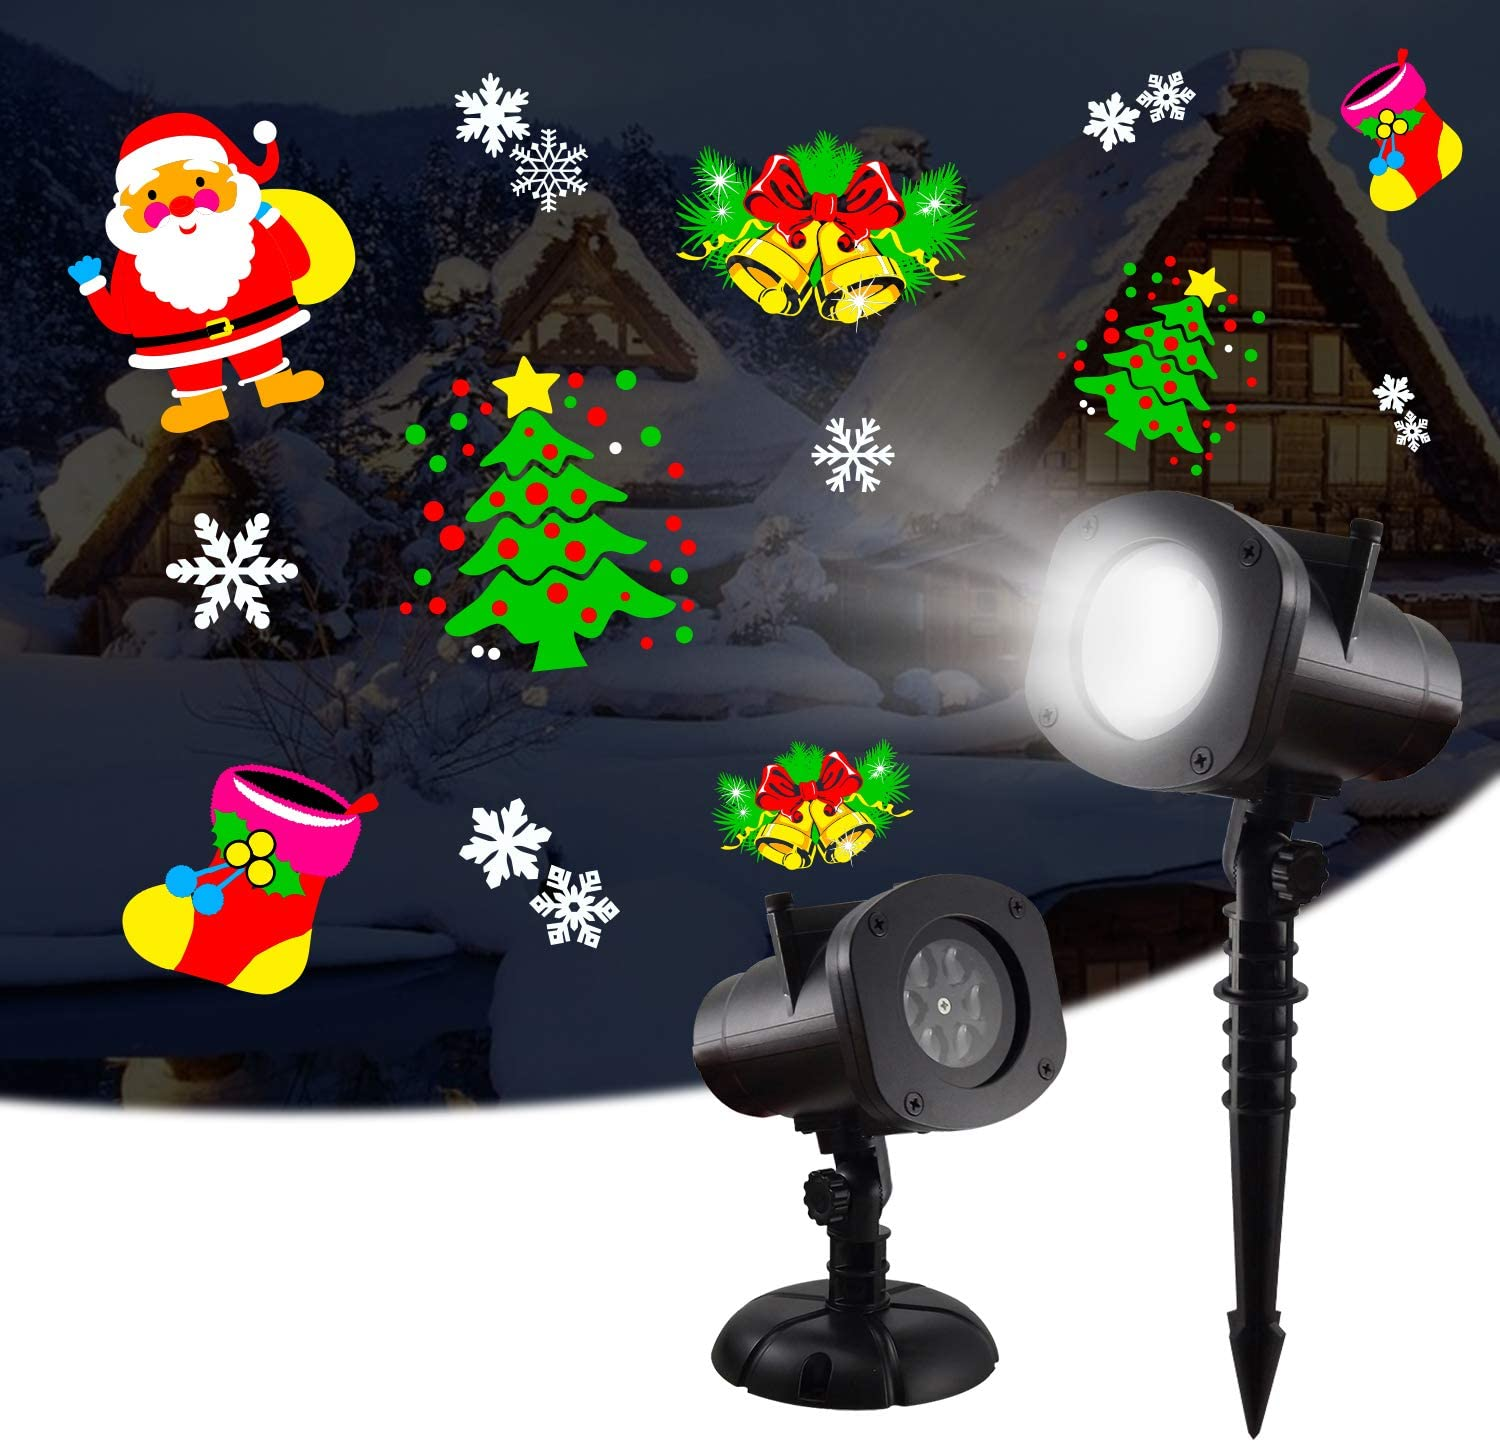 Christmas LED Projector Lights, WOLFTAIL Outdoor&Indoor Rotatable Lamp, Halloween Snowflake Projector with 12 Themes, Waterproof Landscape Decorative Lighting Garden Party New Year Xmas